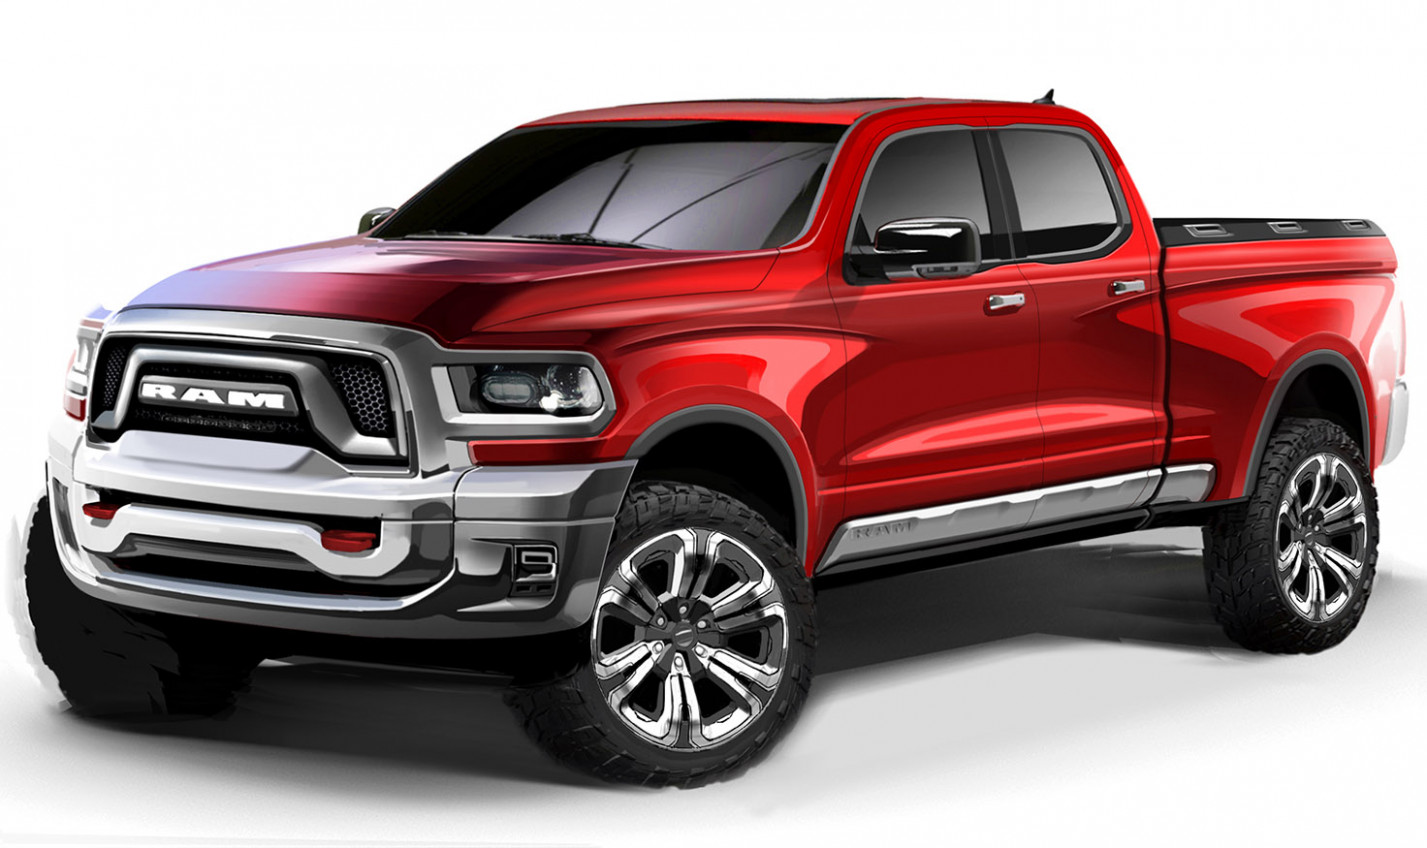 Redesign and Concept 2022 RAM 1500